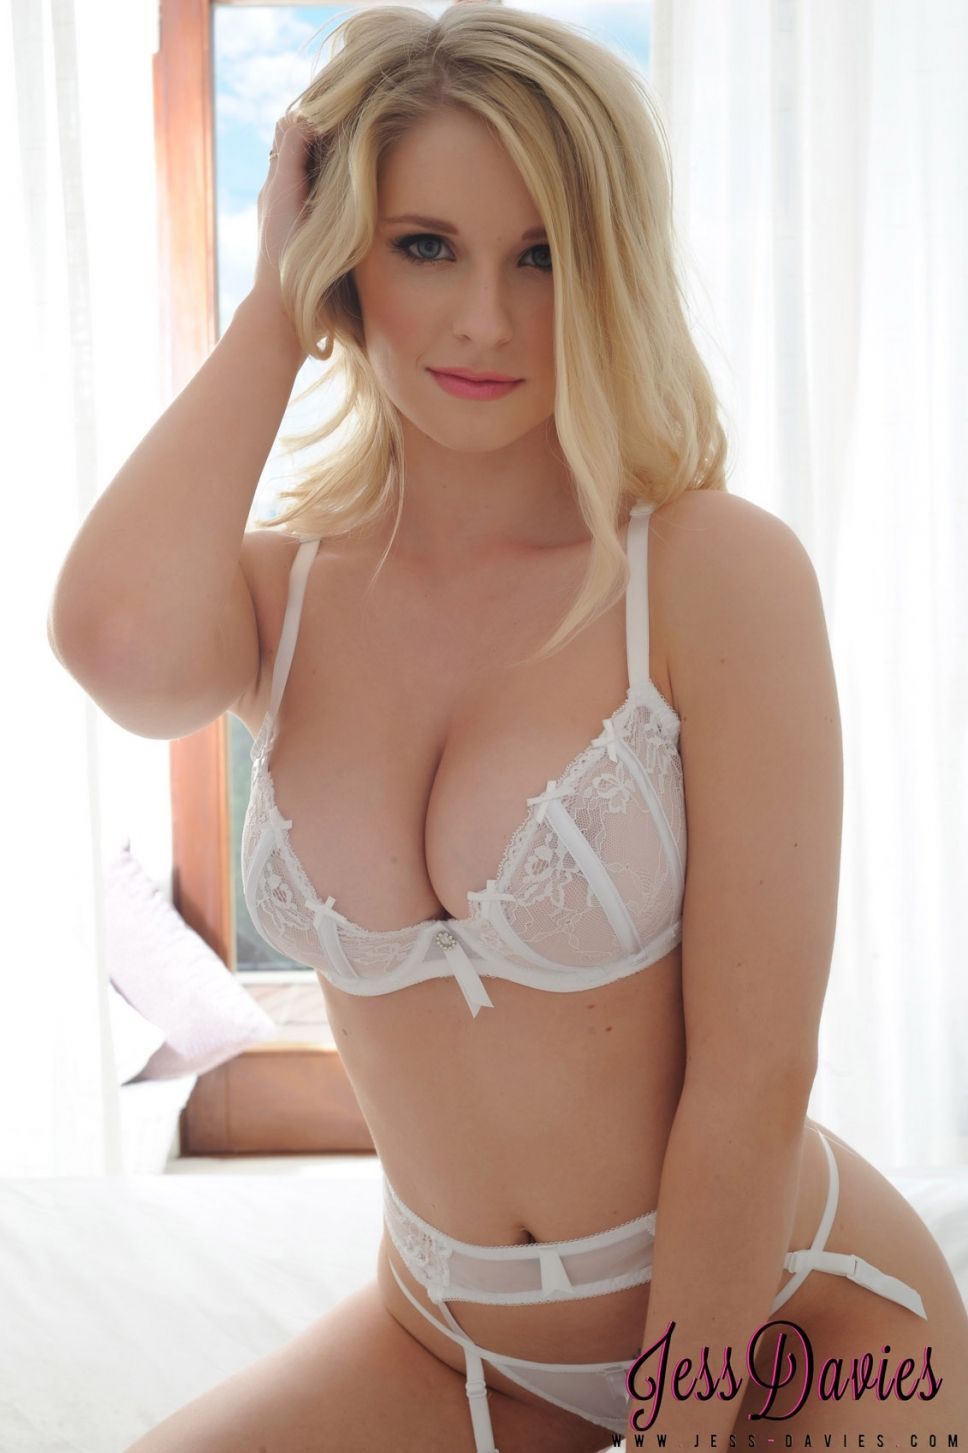 Snapchat Jess Davies nudes (31 foto and video), Pussy, Paparazzi, Selfie, underwear 2020